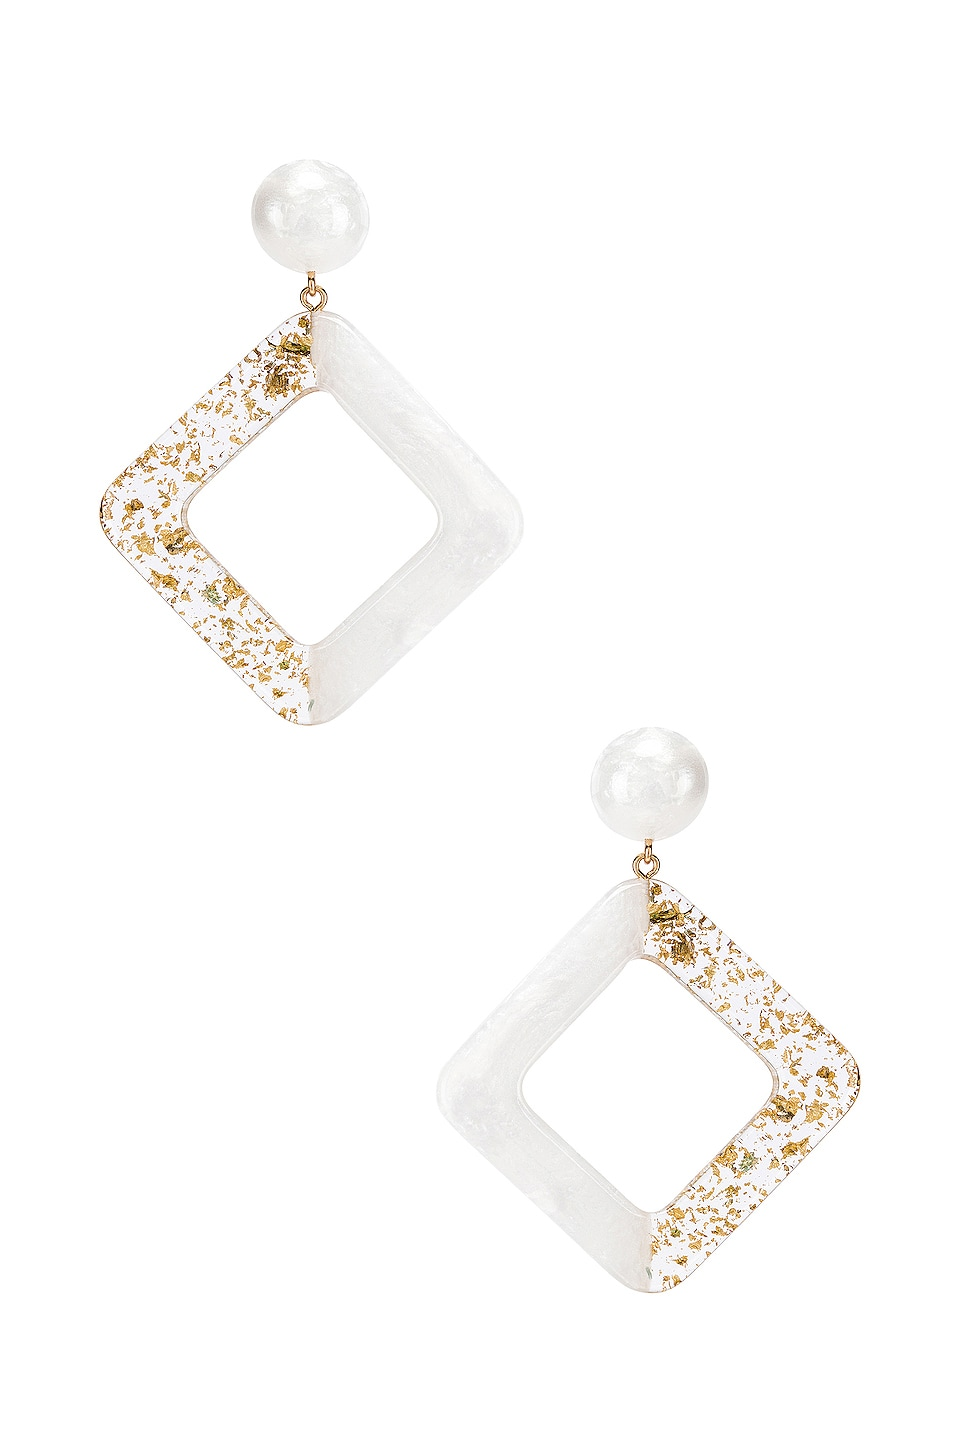 Amber Sceats Jetta Earrings in White